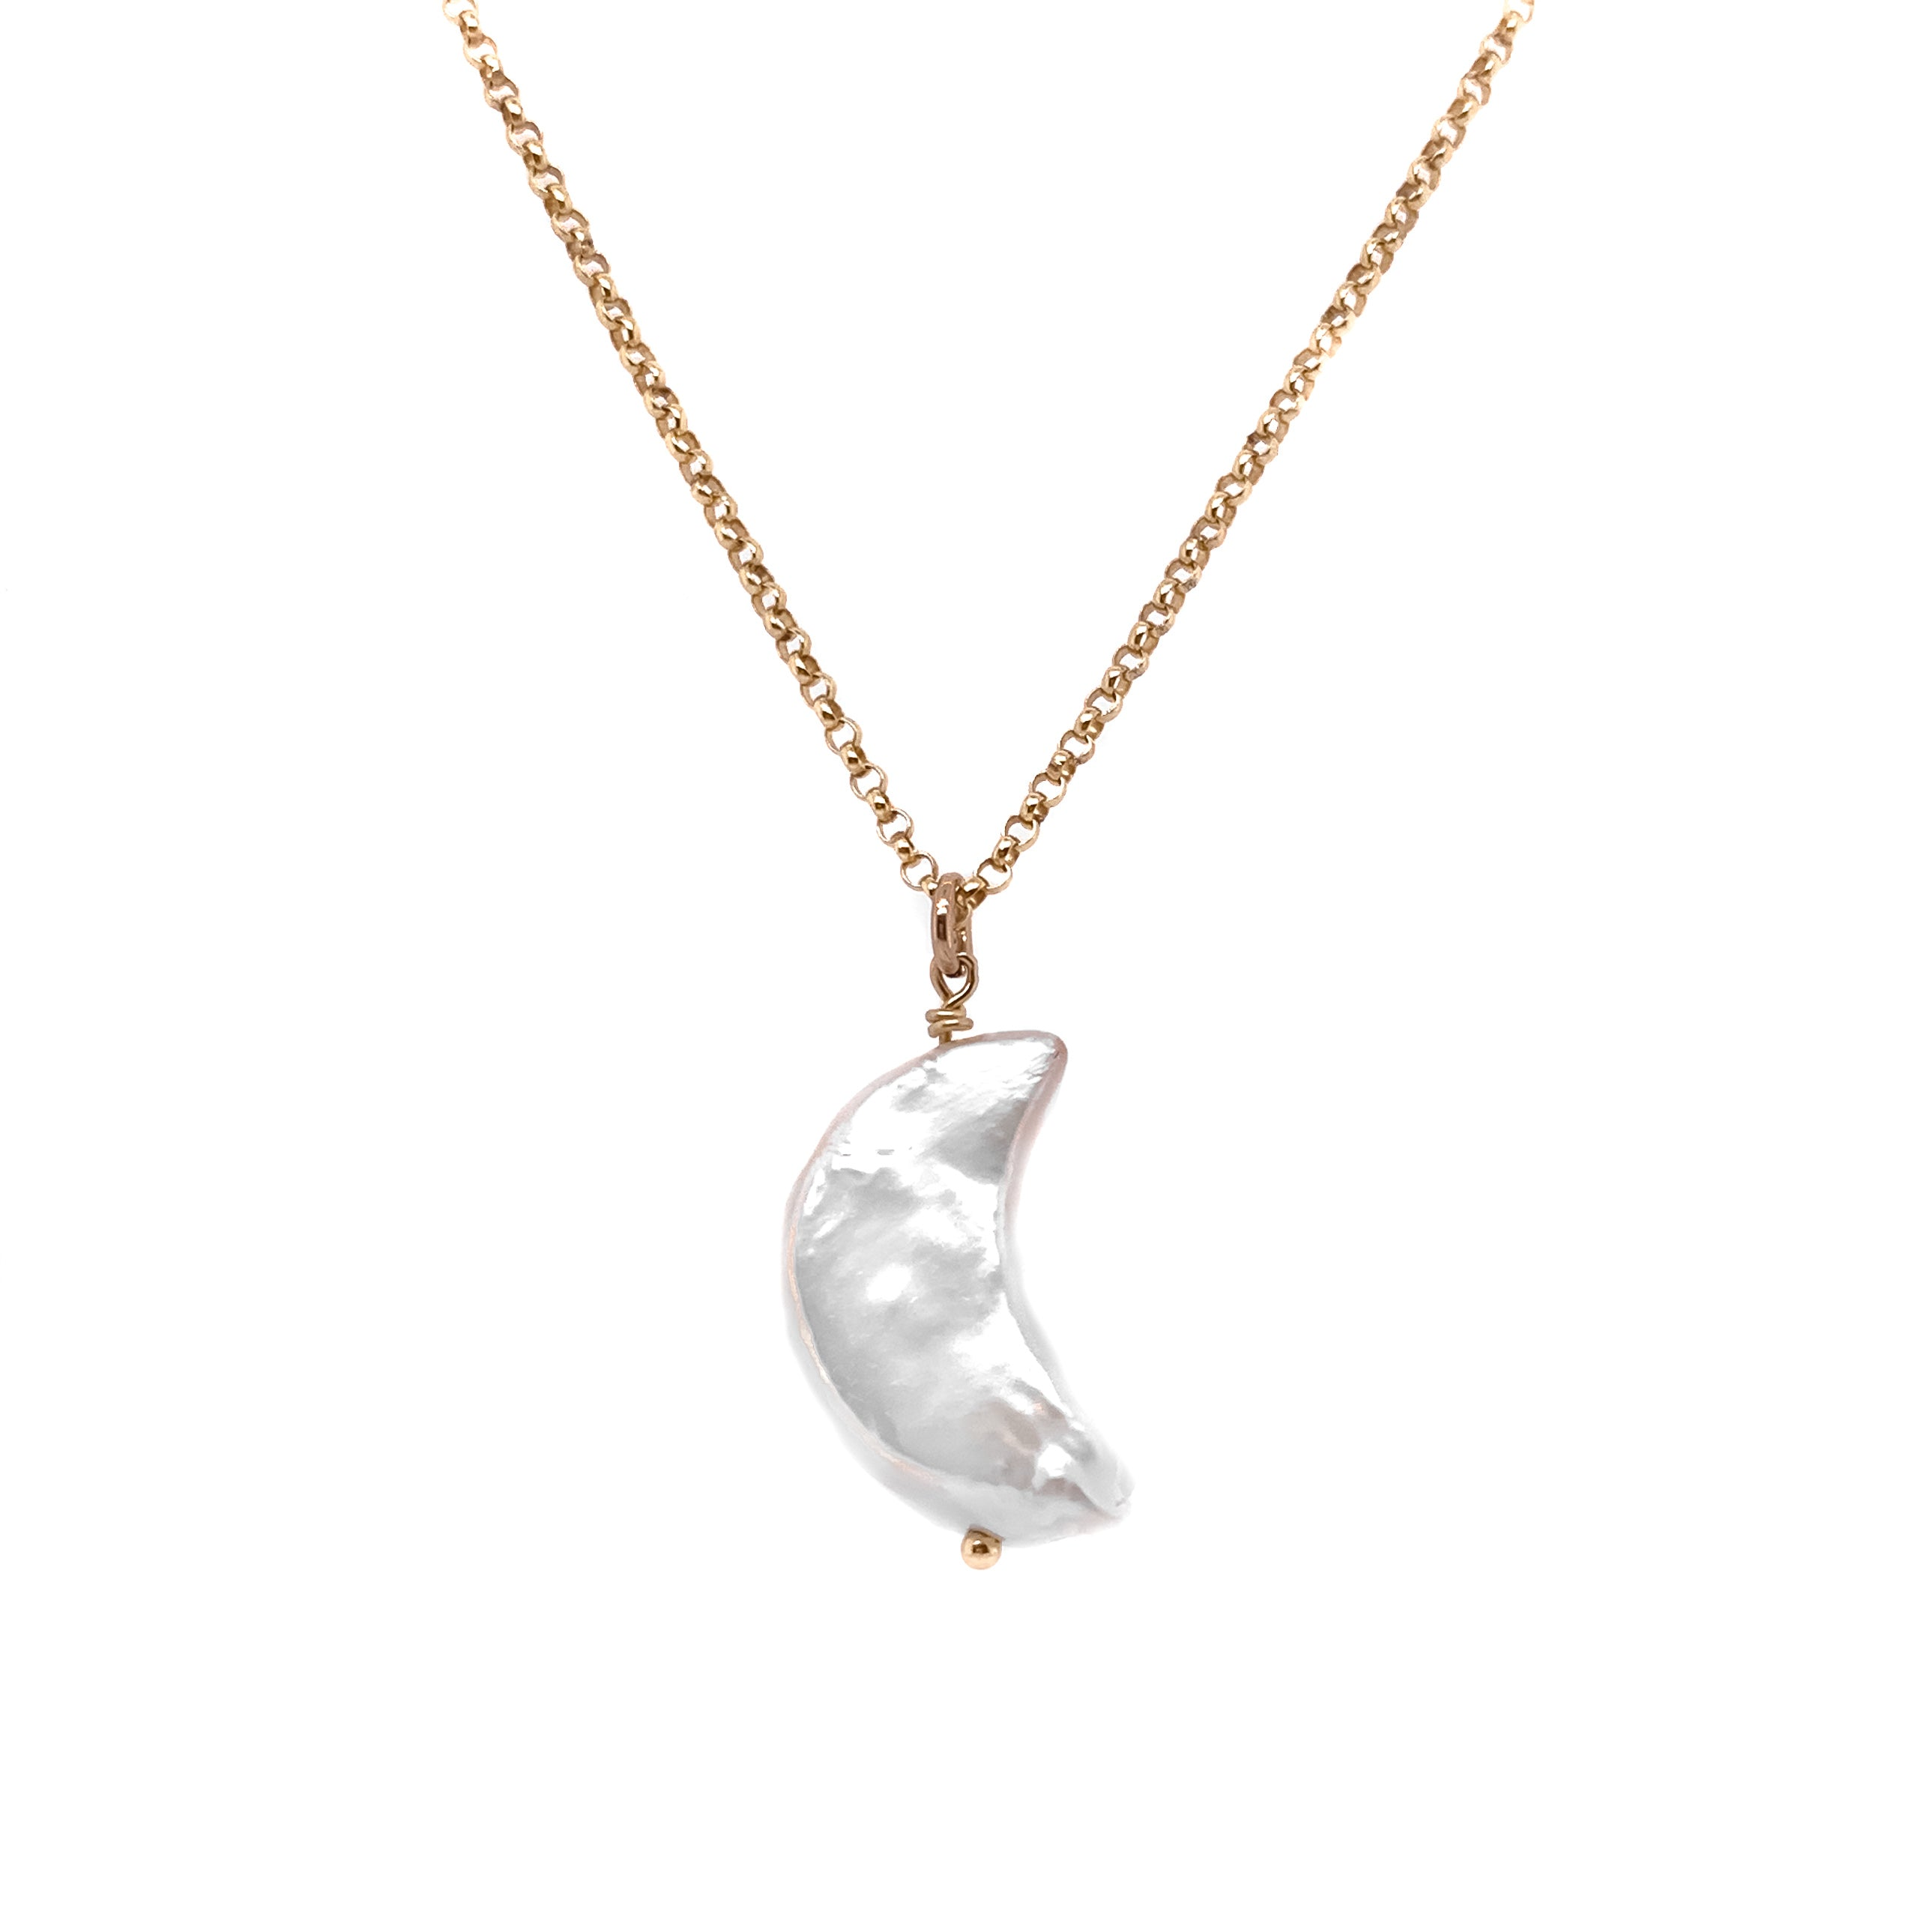 PEARL CRESCENT MOON NECKLACE- 14K Gold Filled